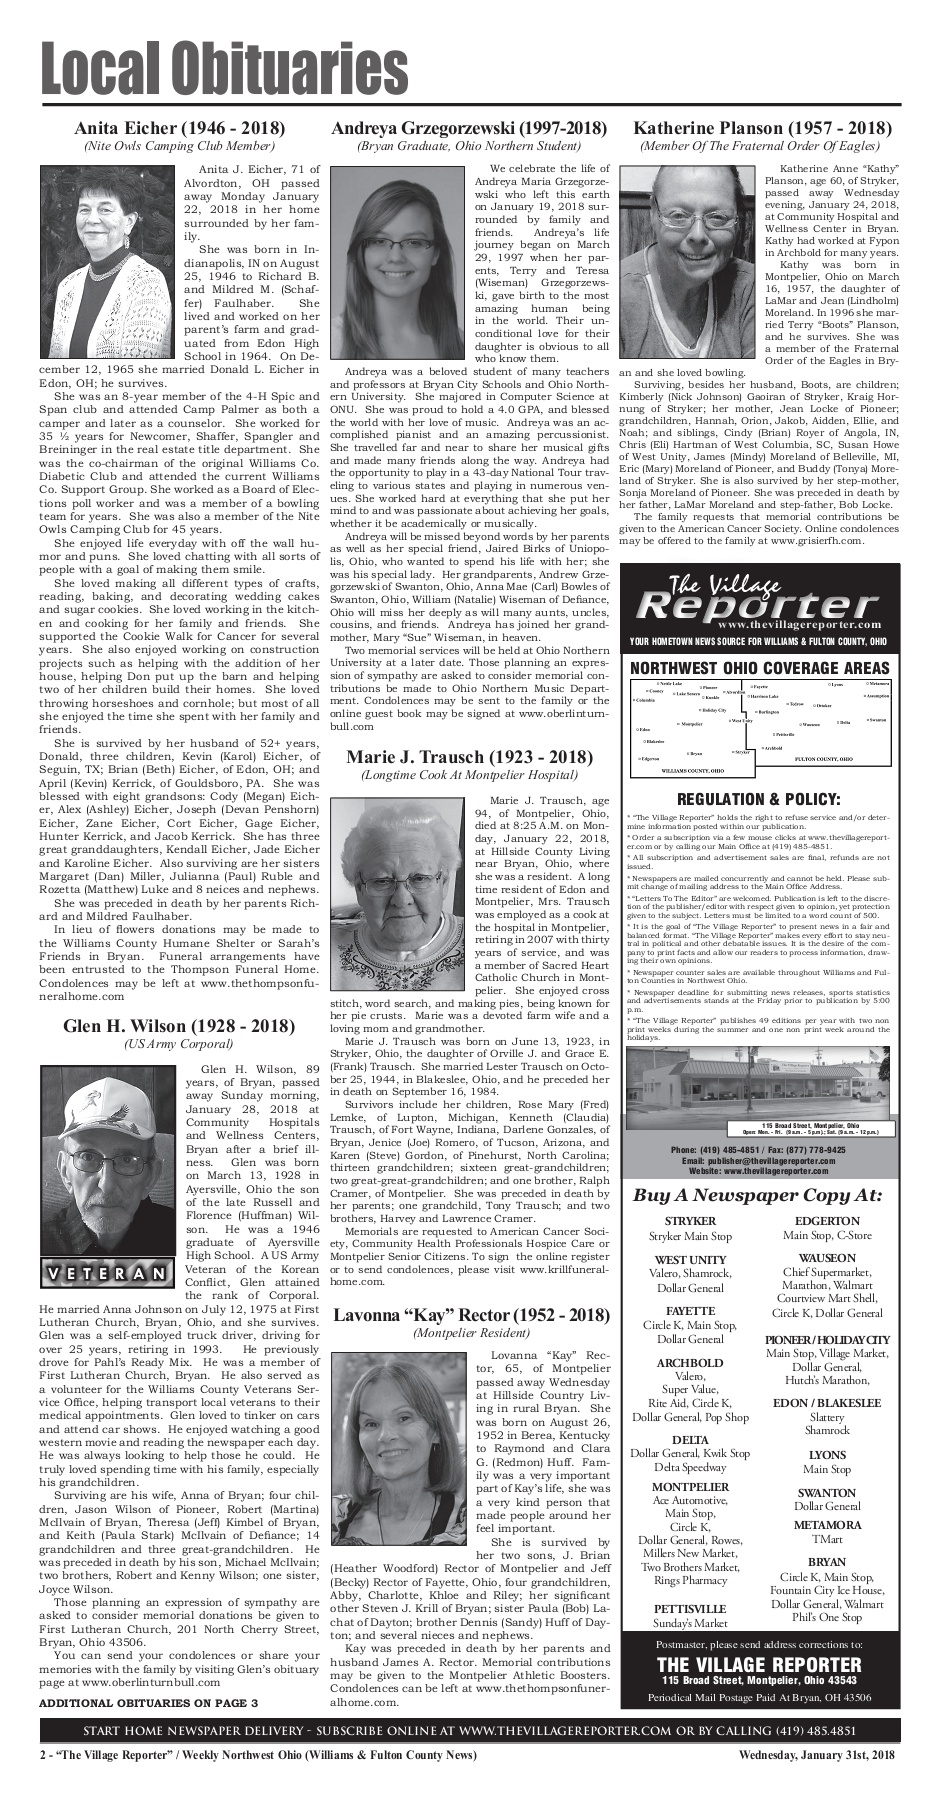 The Village Reporter - January 31st, 2018 Pages 1 - 32